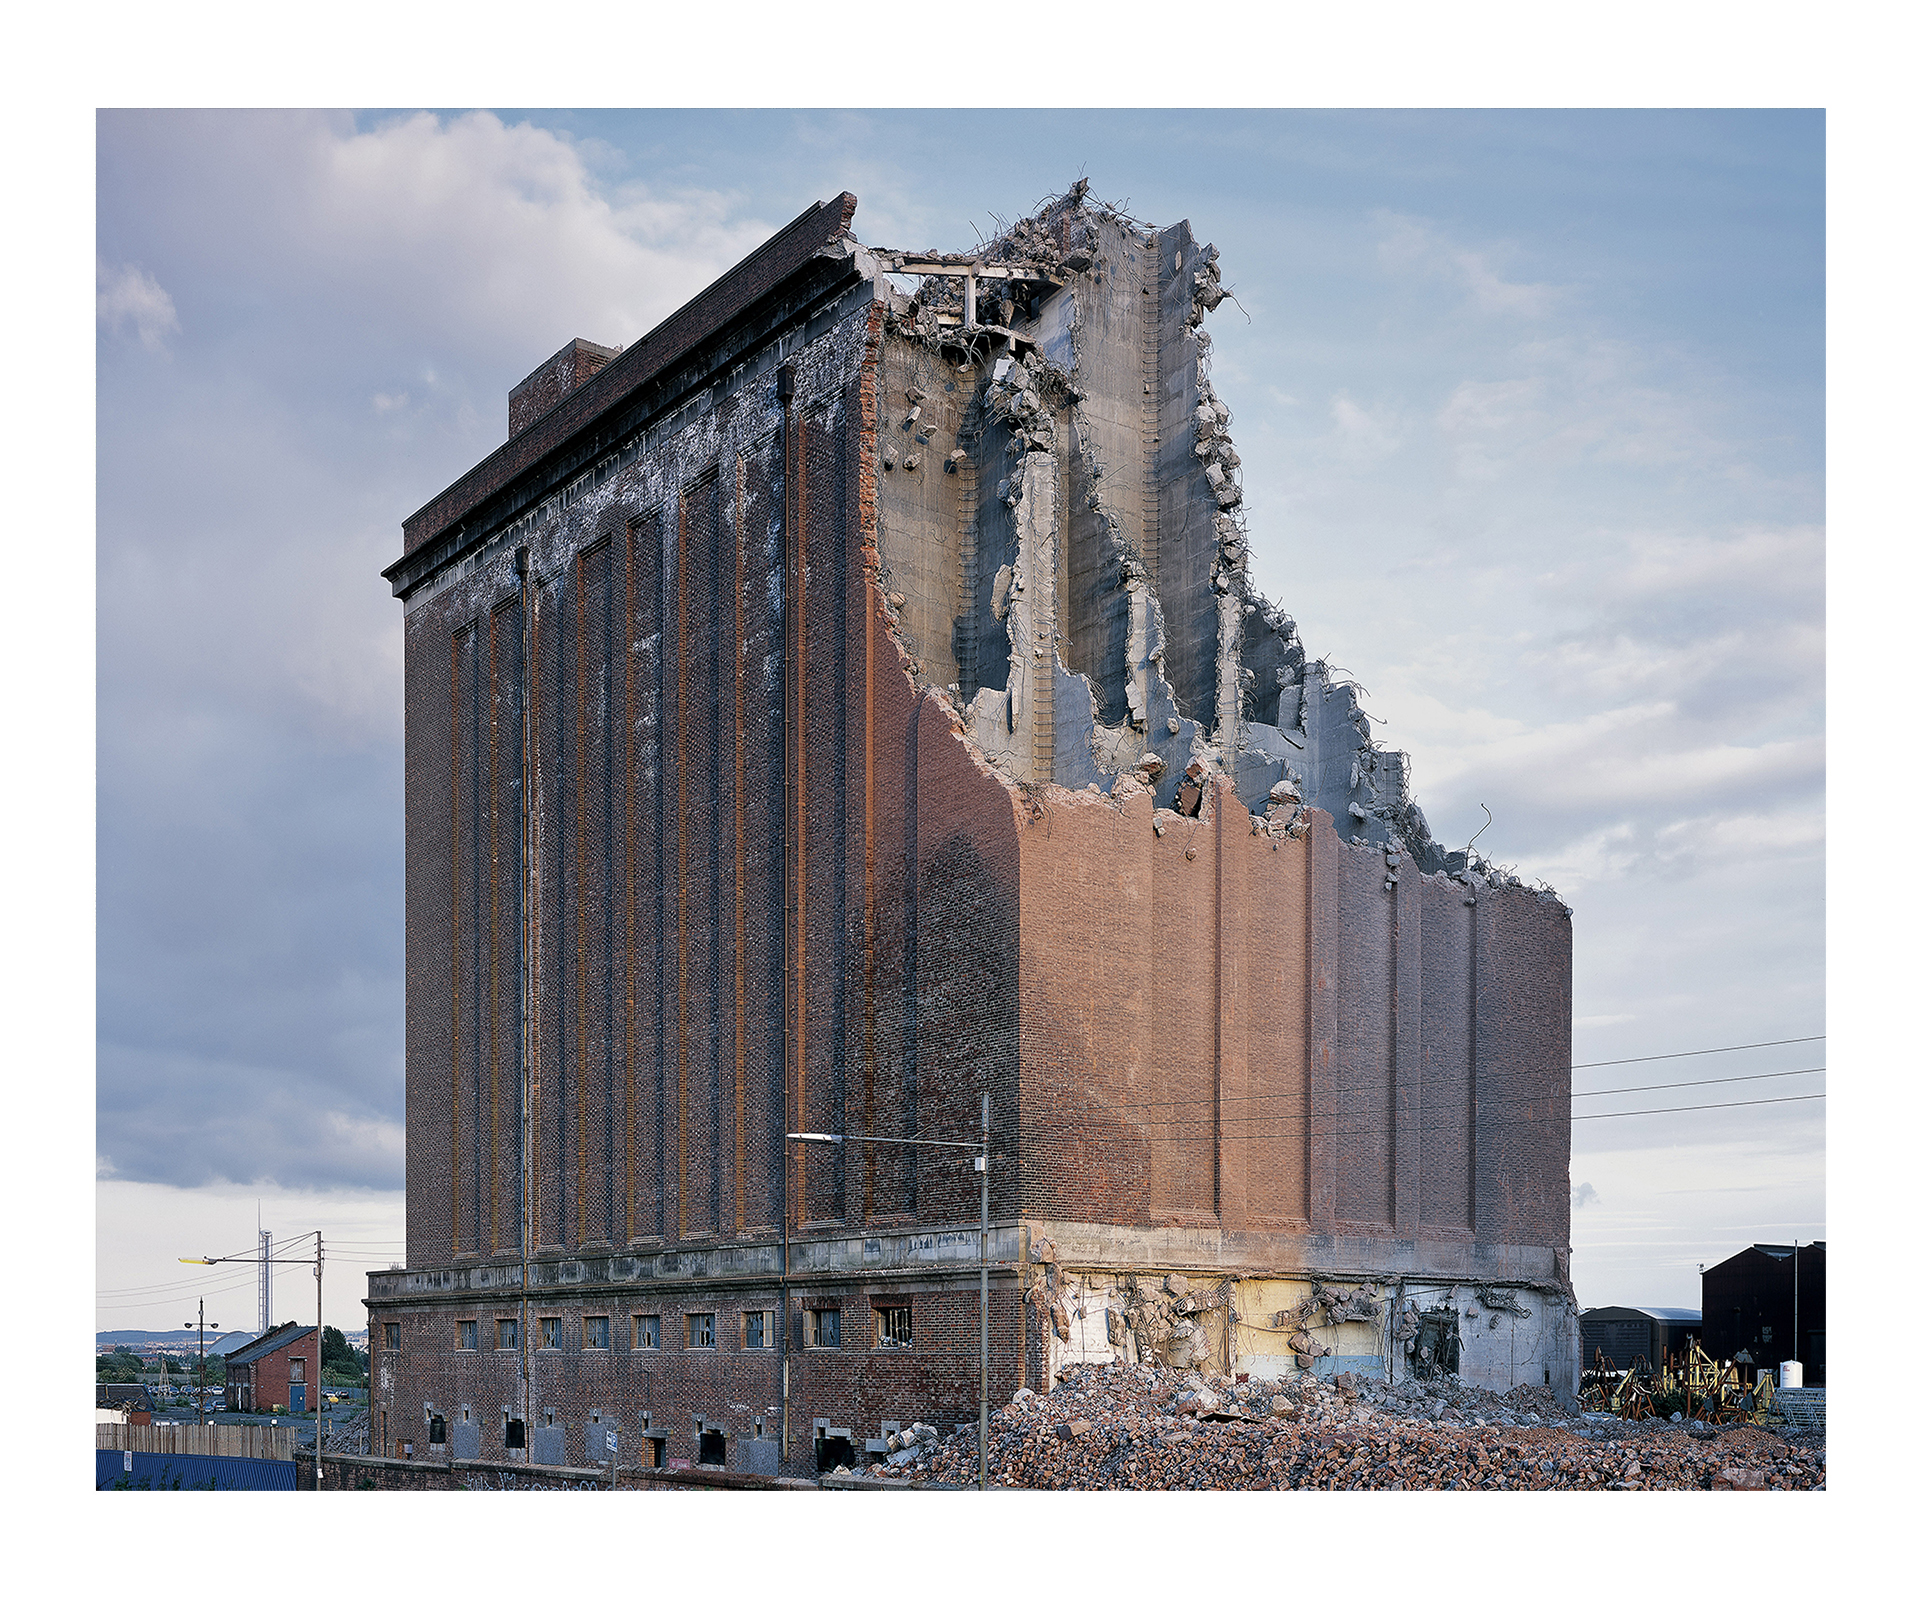 Image of Granary, from the series 'Forth and Clyde' by Martin Hunter